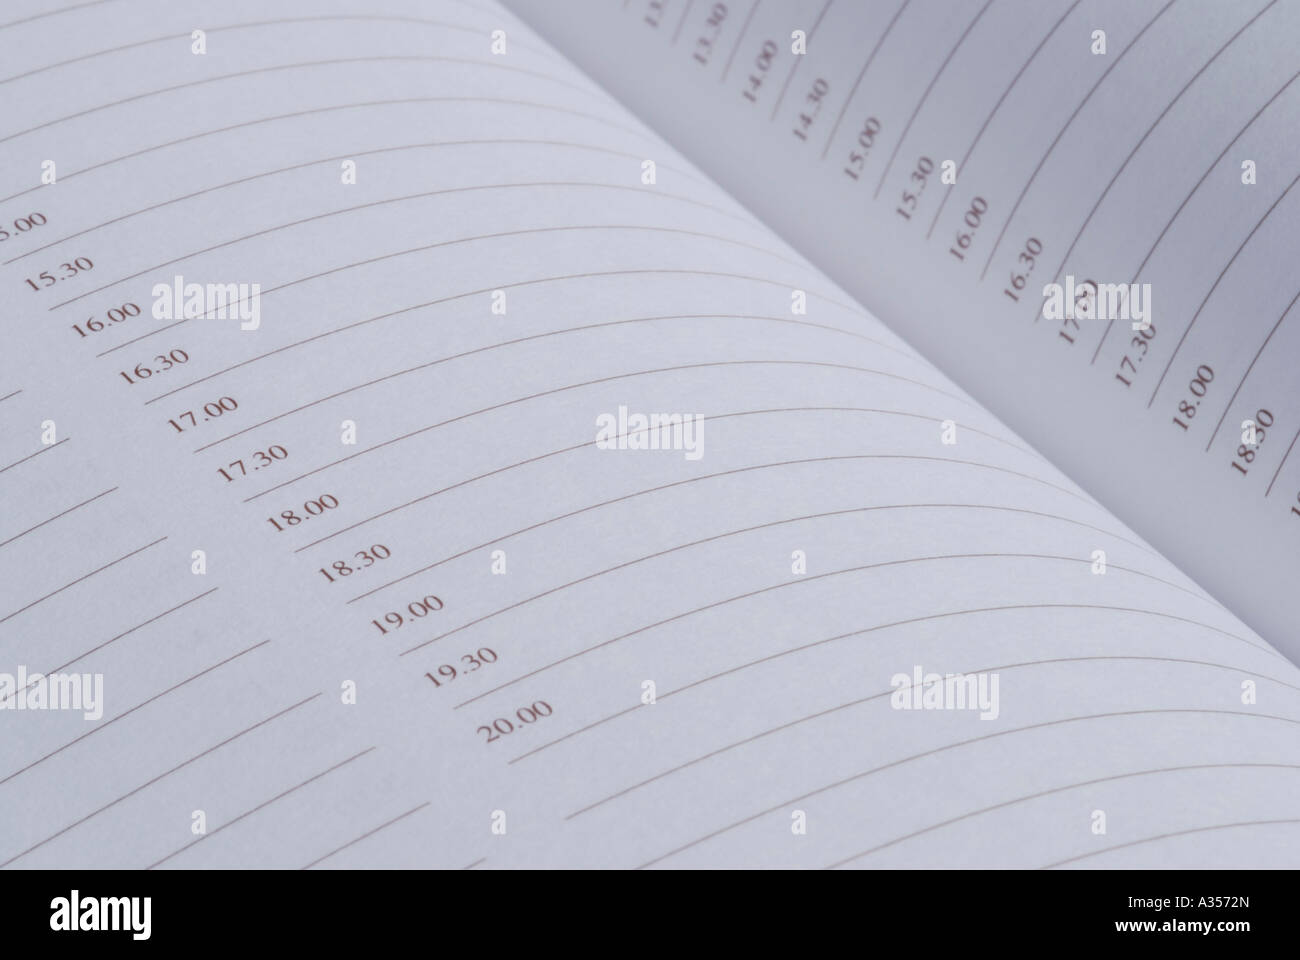 Close up of diary pages showing times - Stock Image